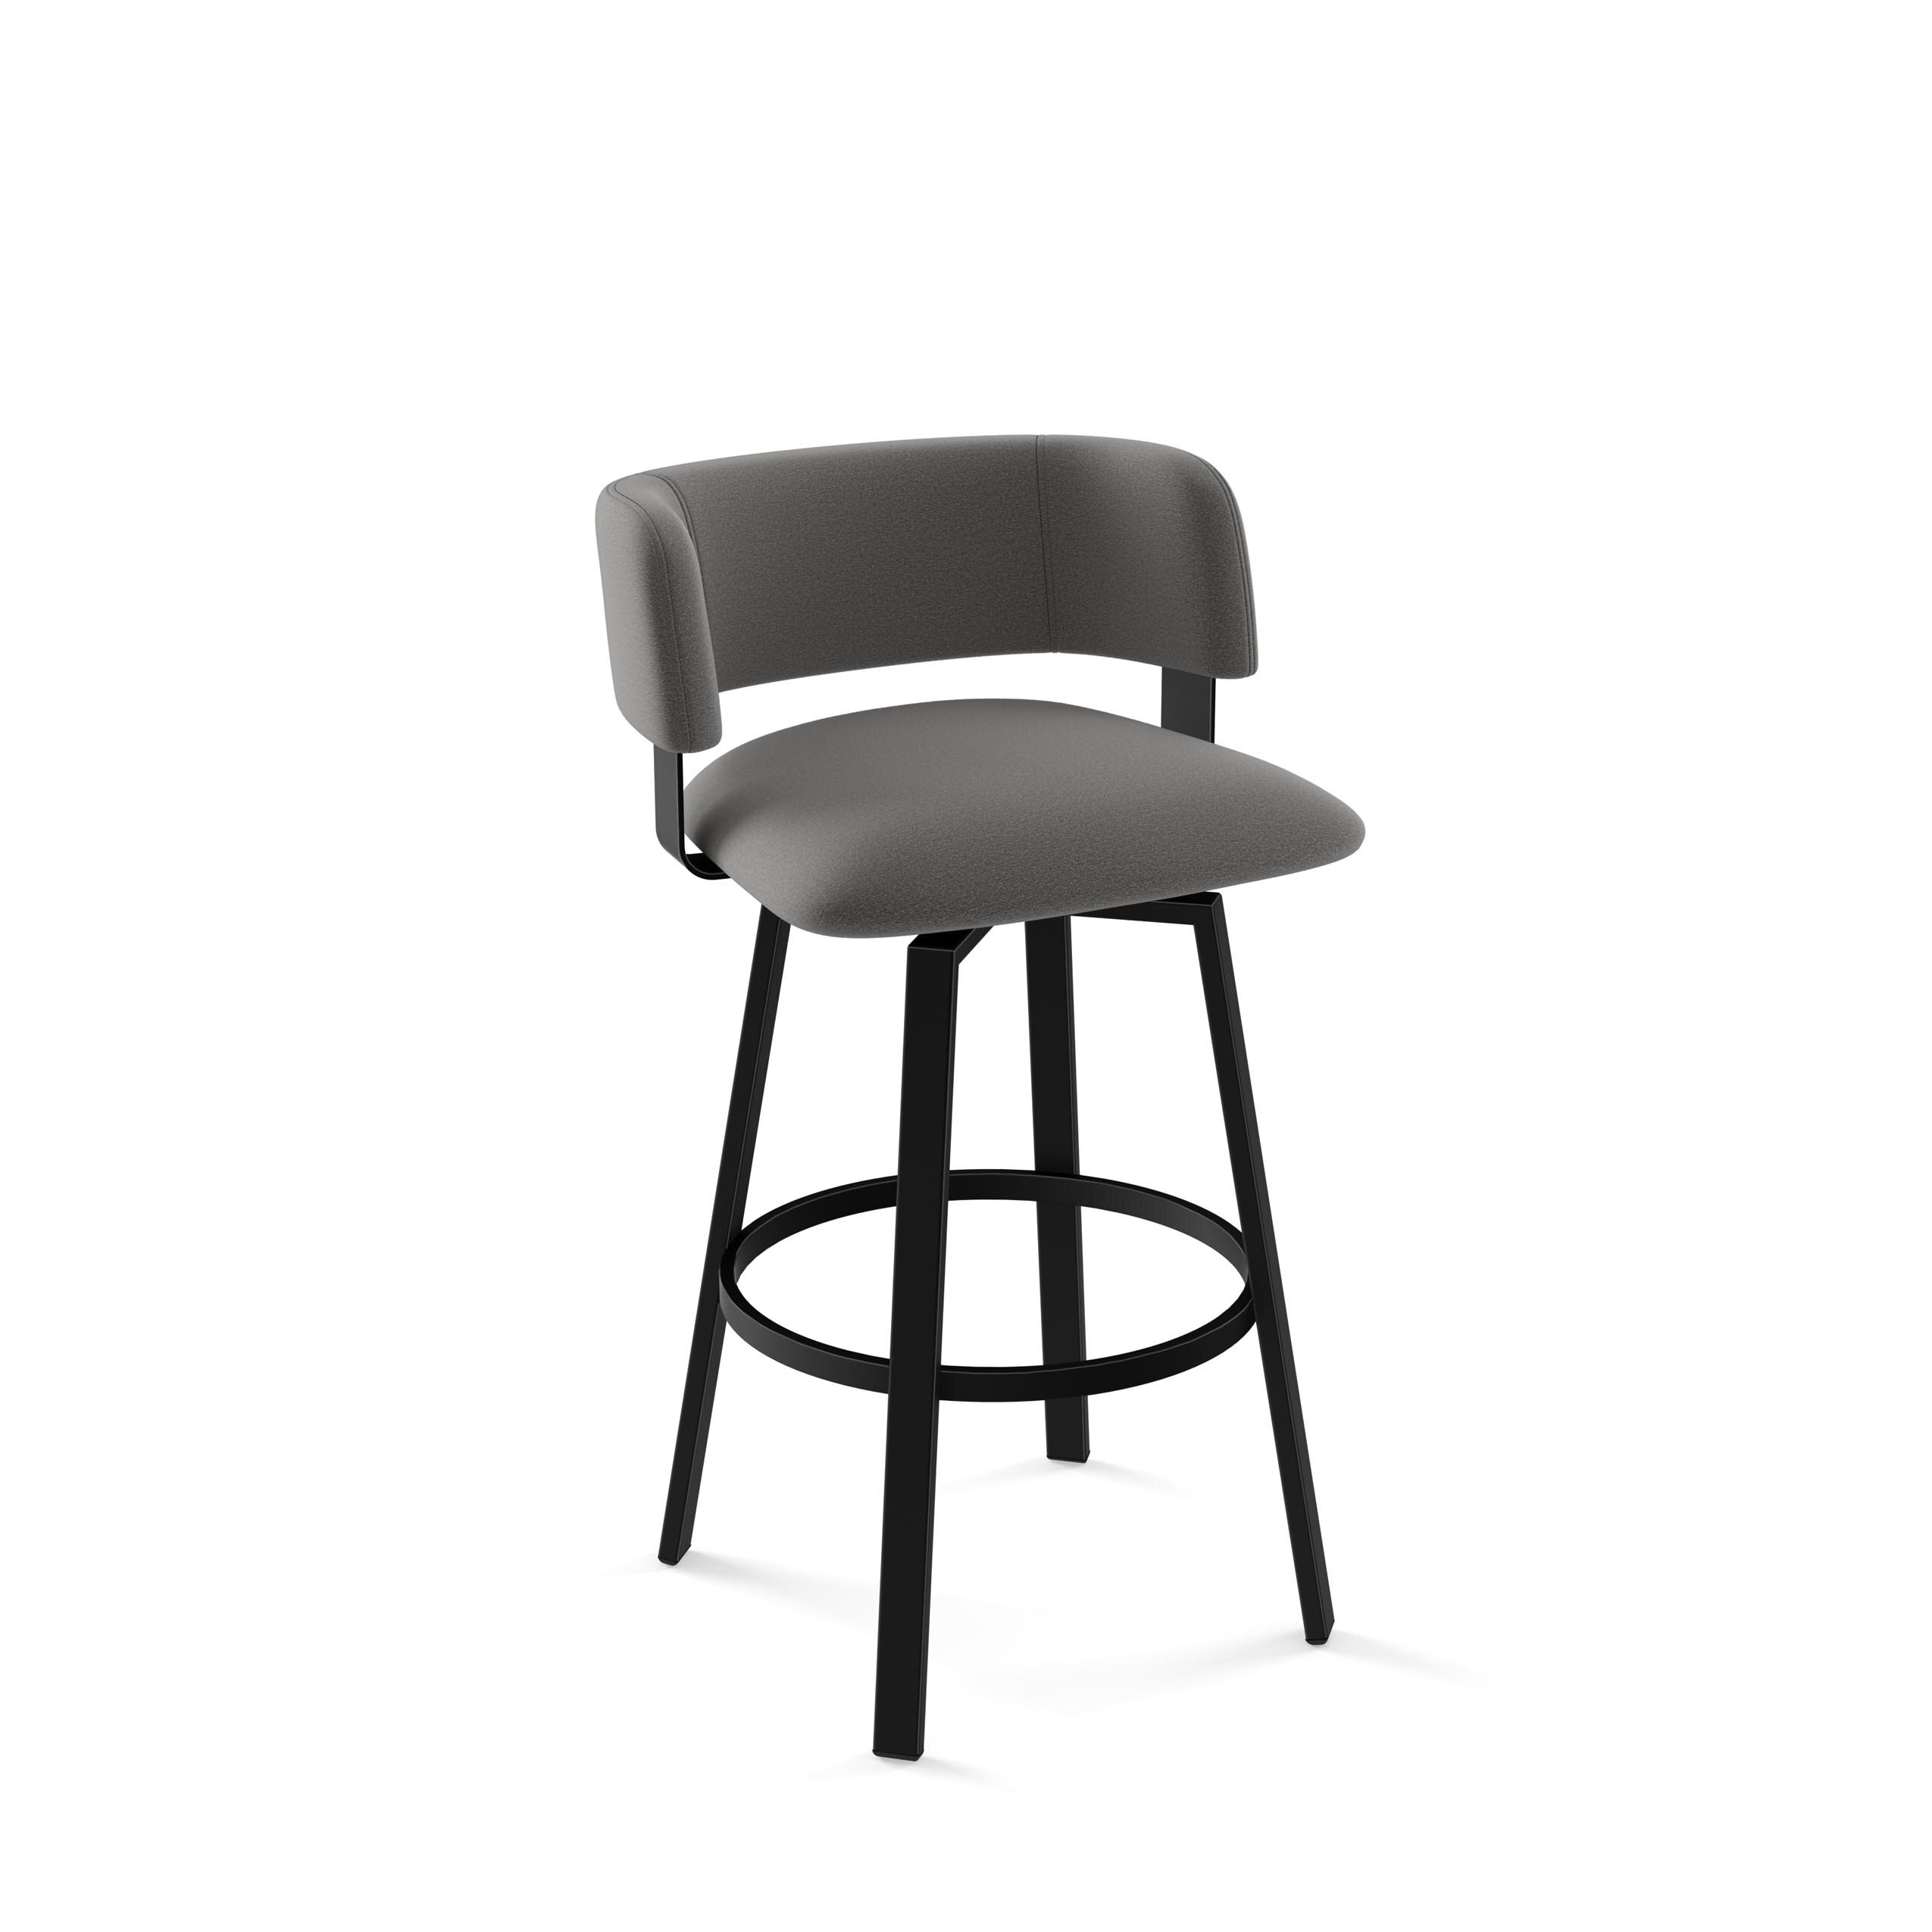 p stool backrest stools black swivel with owen counter bar v or back